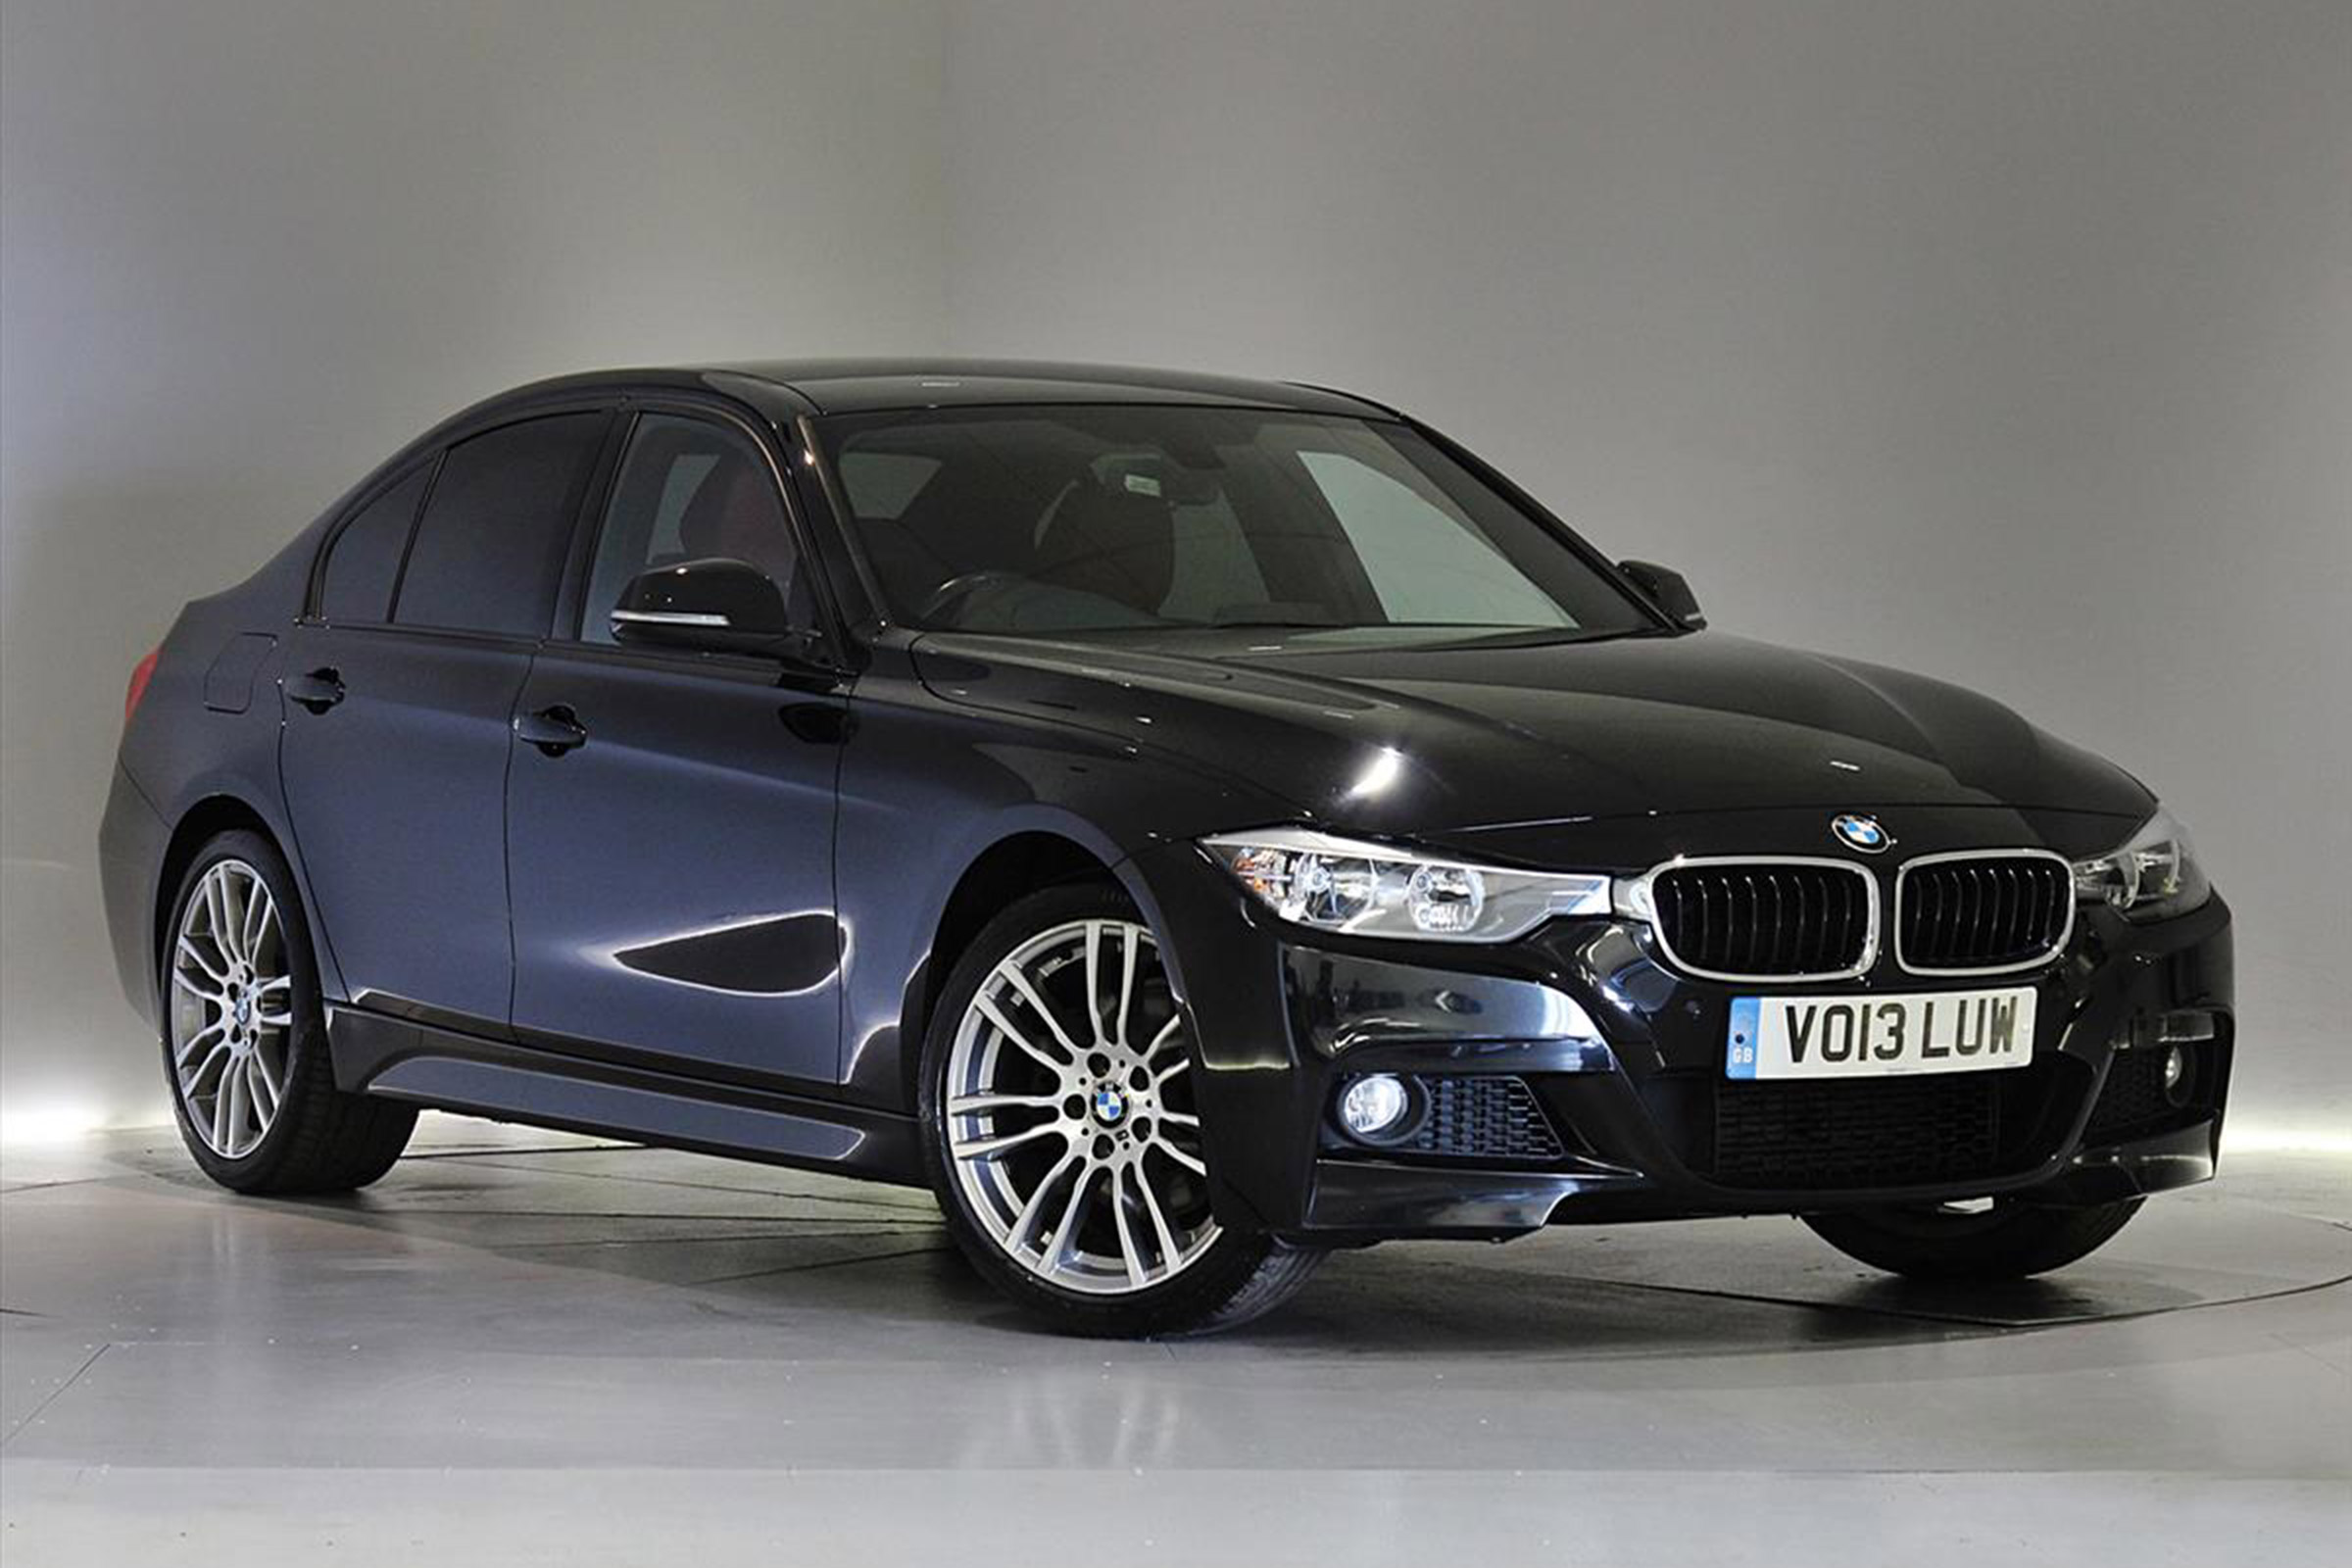 bmw 3 series f30 330d 335d review specs and buying guide evo bmw 3 series f30 330d 335d review